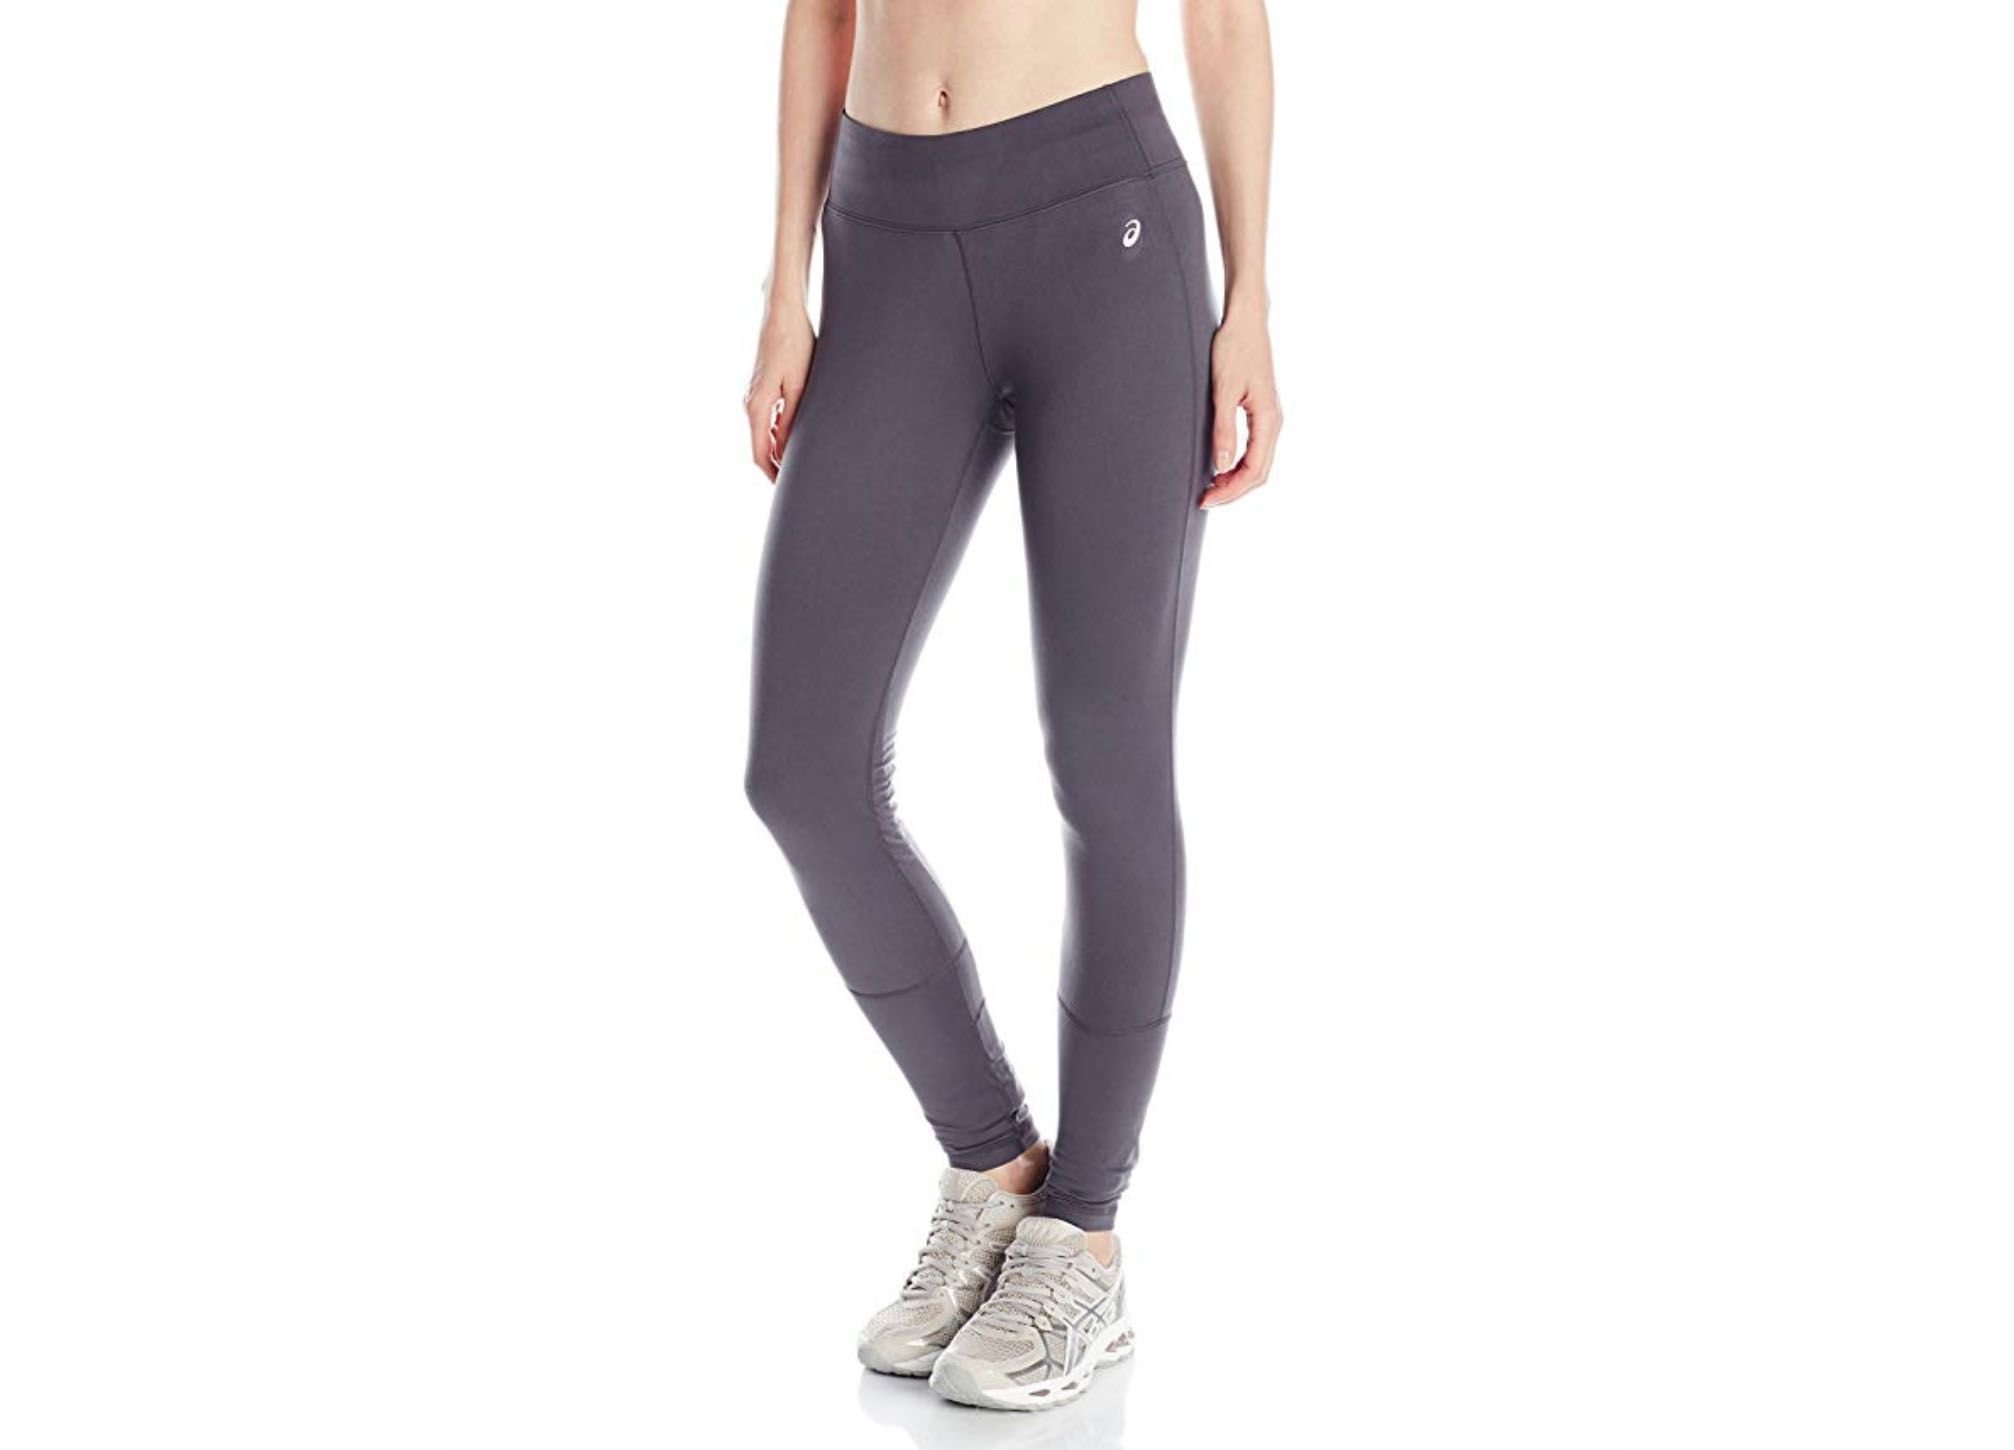 546707e30e78d Best Running Leggings - Workout Pants 2019